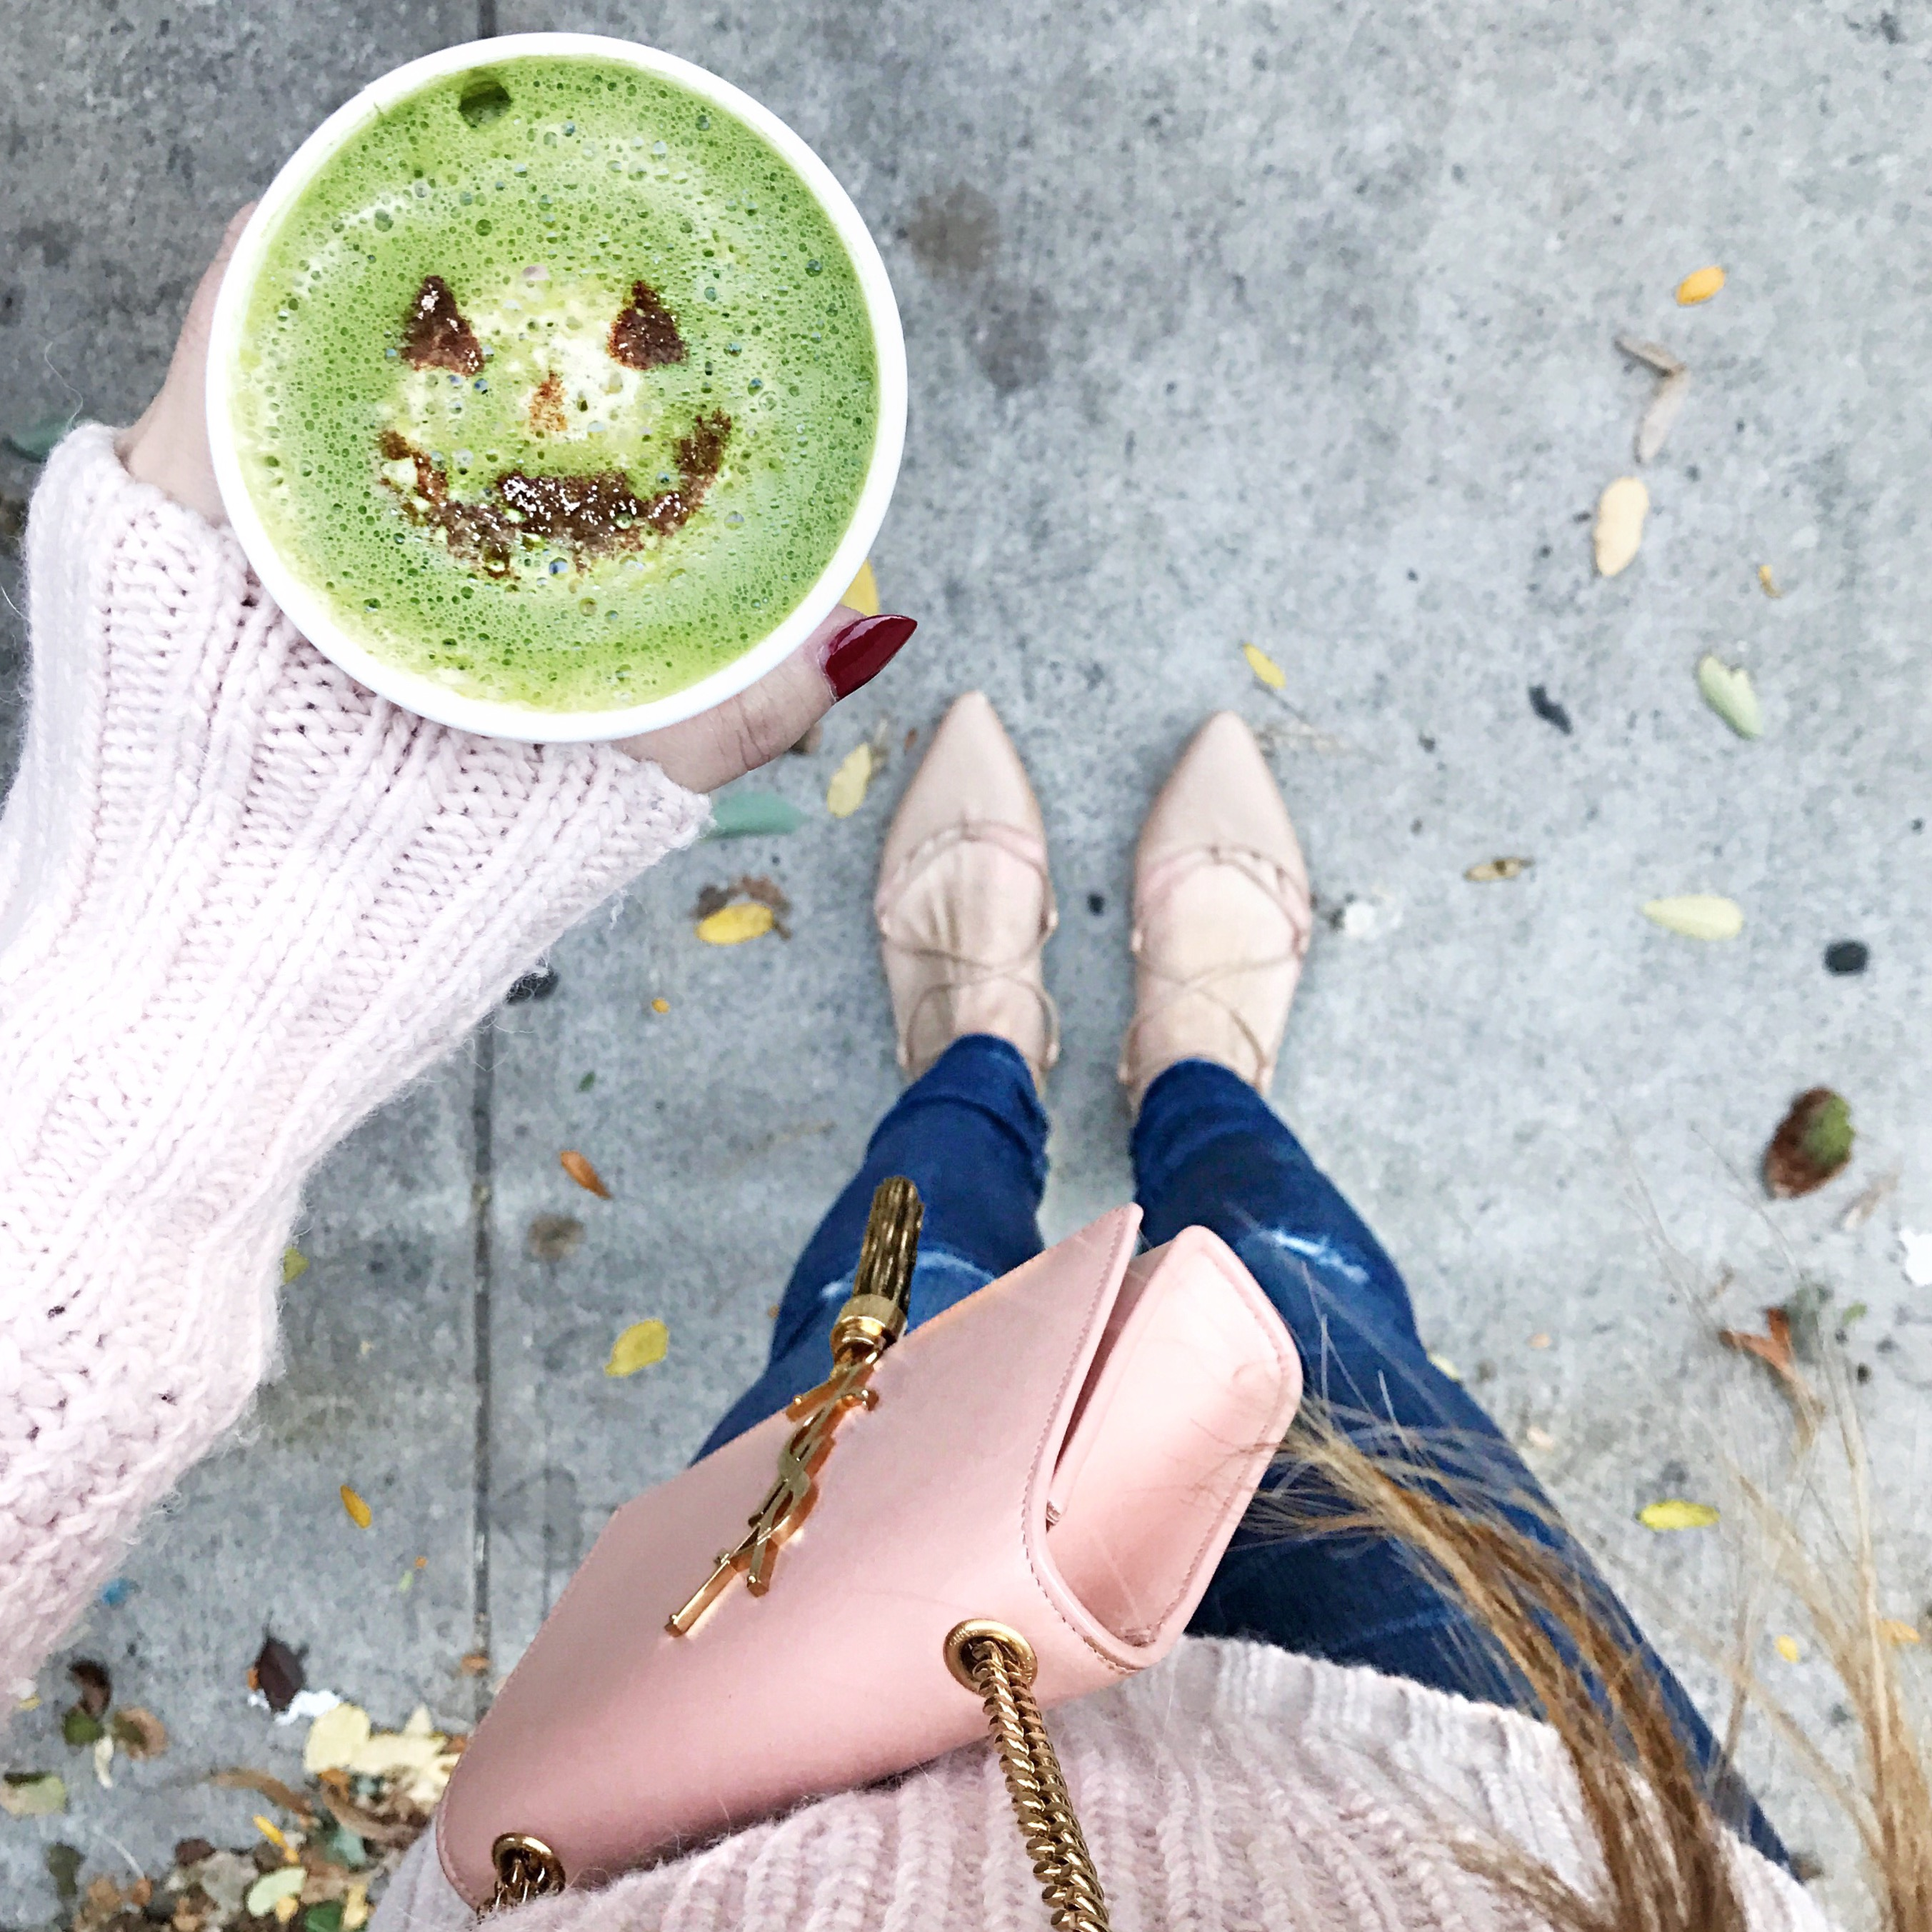 Pumpkin Spice Matcha Latte at Cafe Wabi